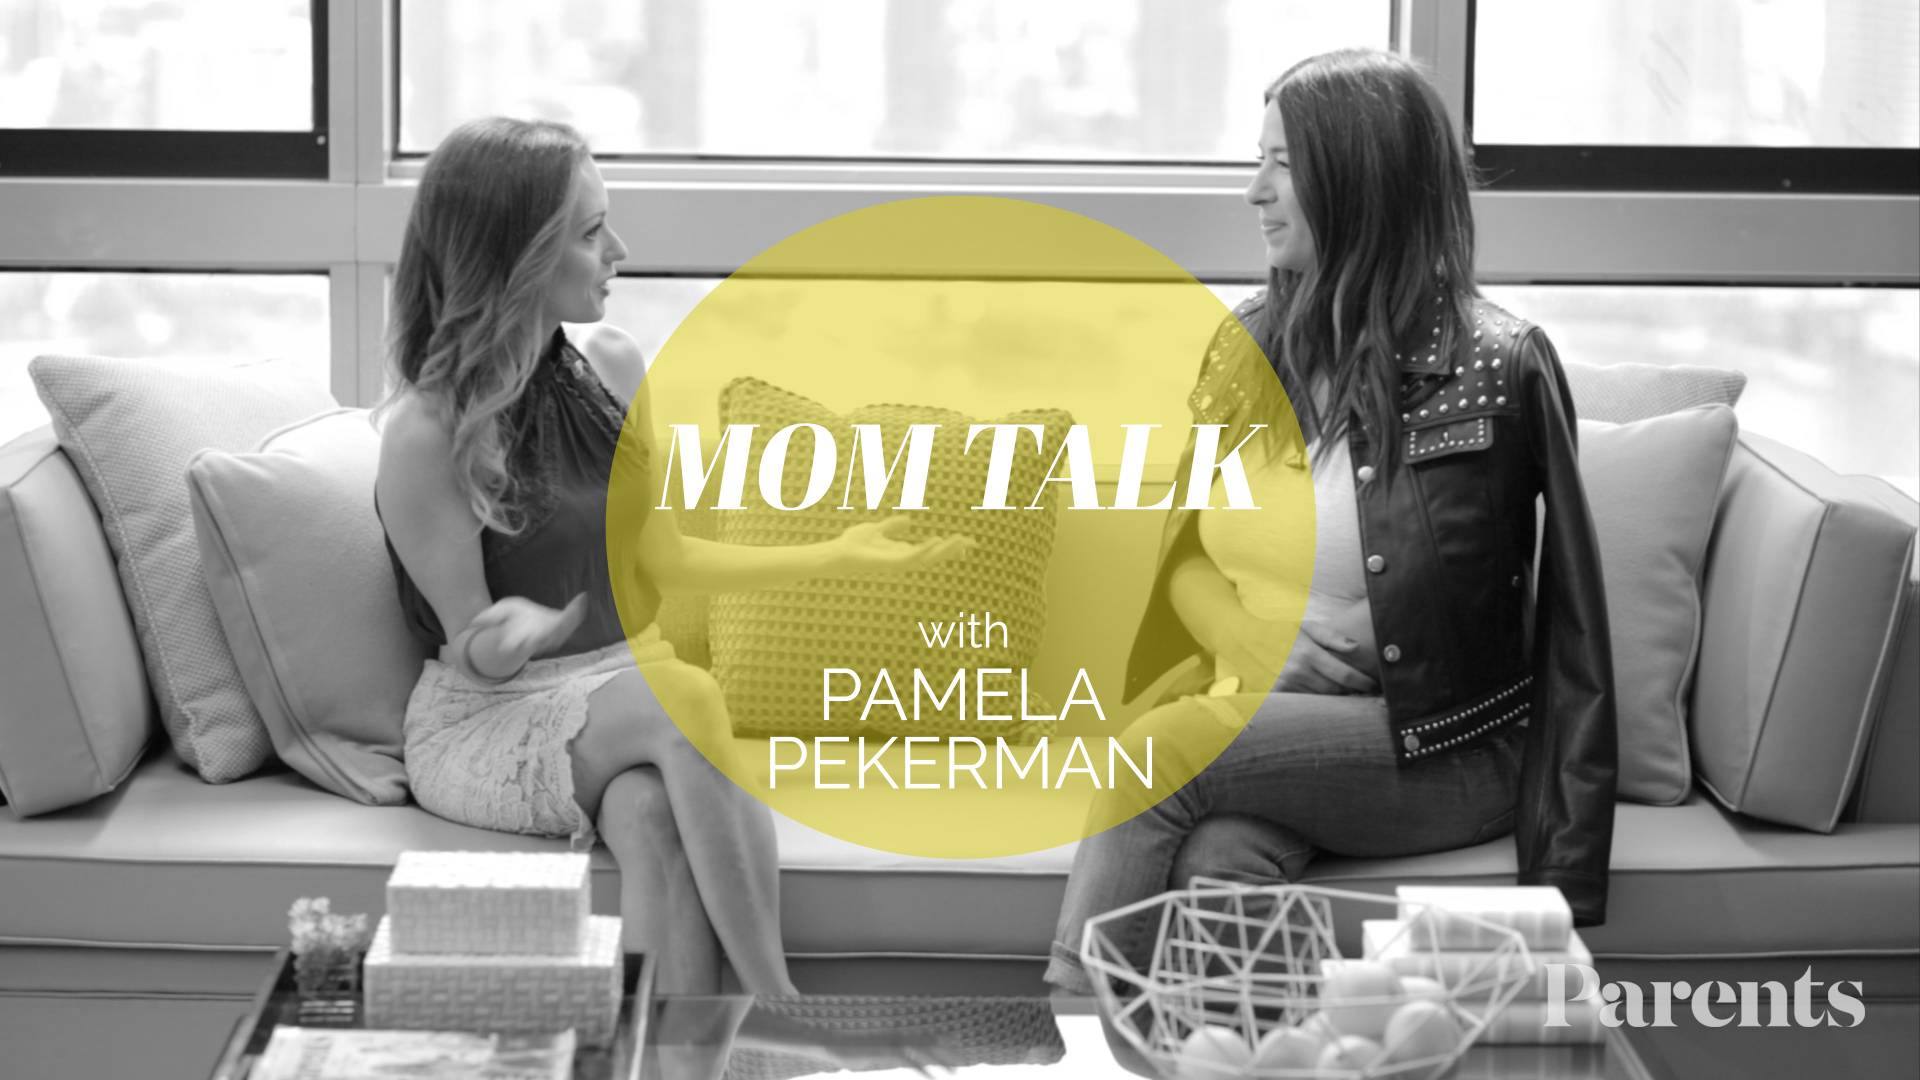 Mom Talk_Rebecca Minkoff_still